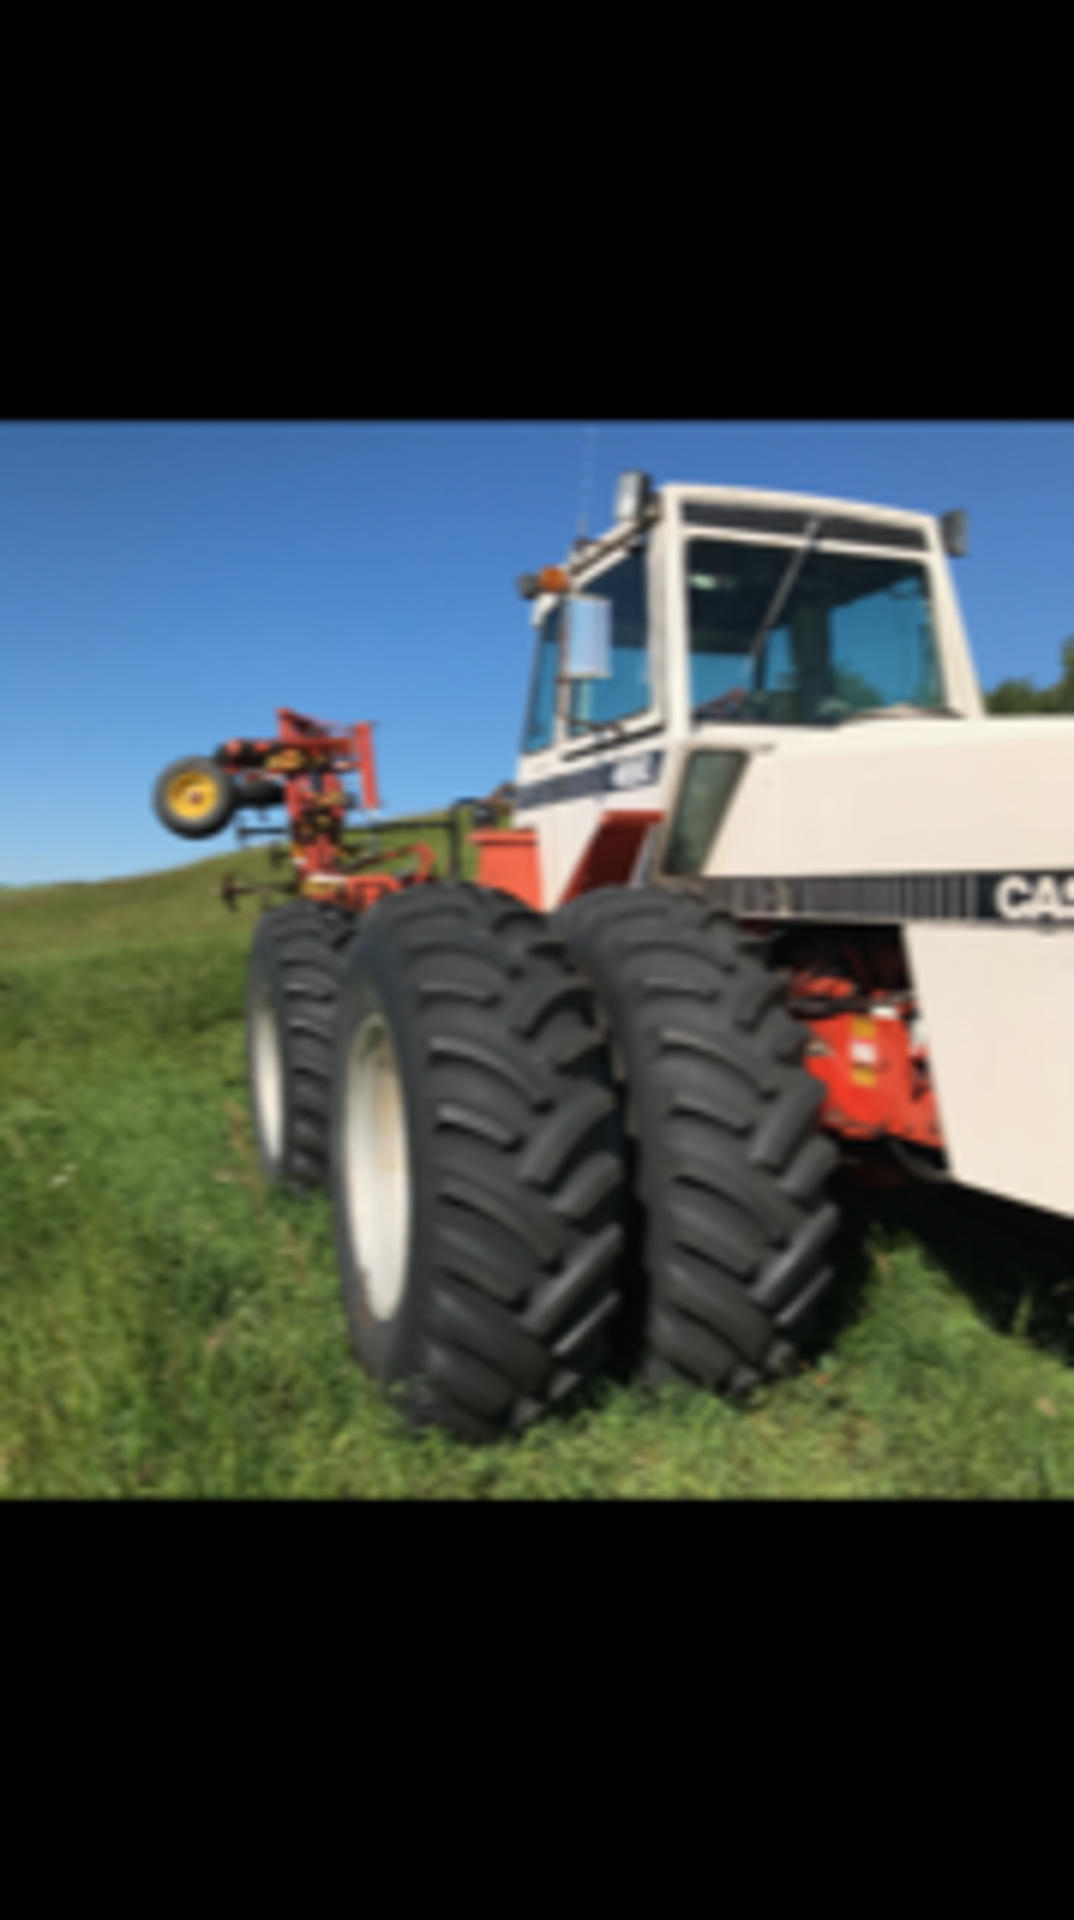 1984 Case Tractor 4690, 4wd, 5683 hrs showing sn: 10259565 - Image 3 of 4